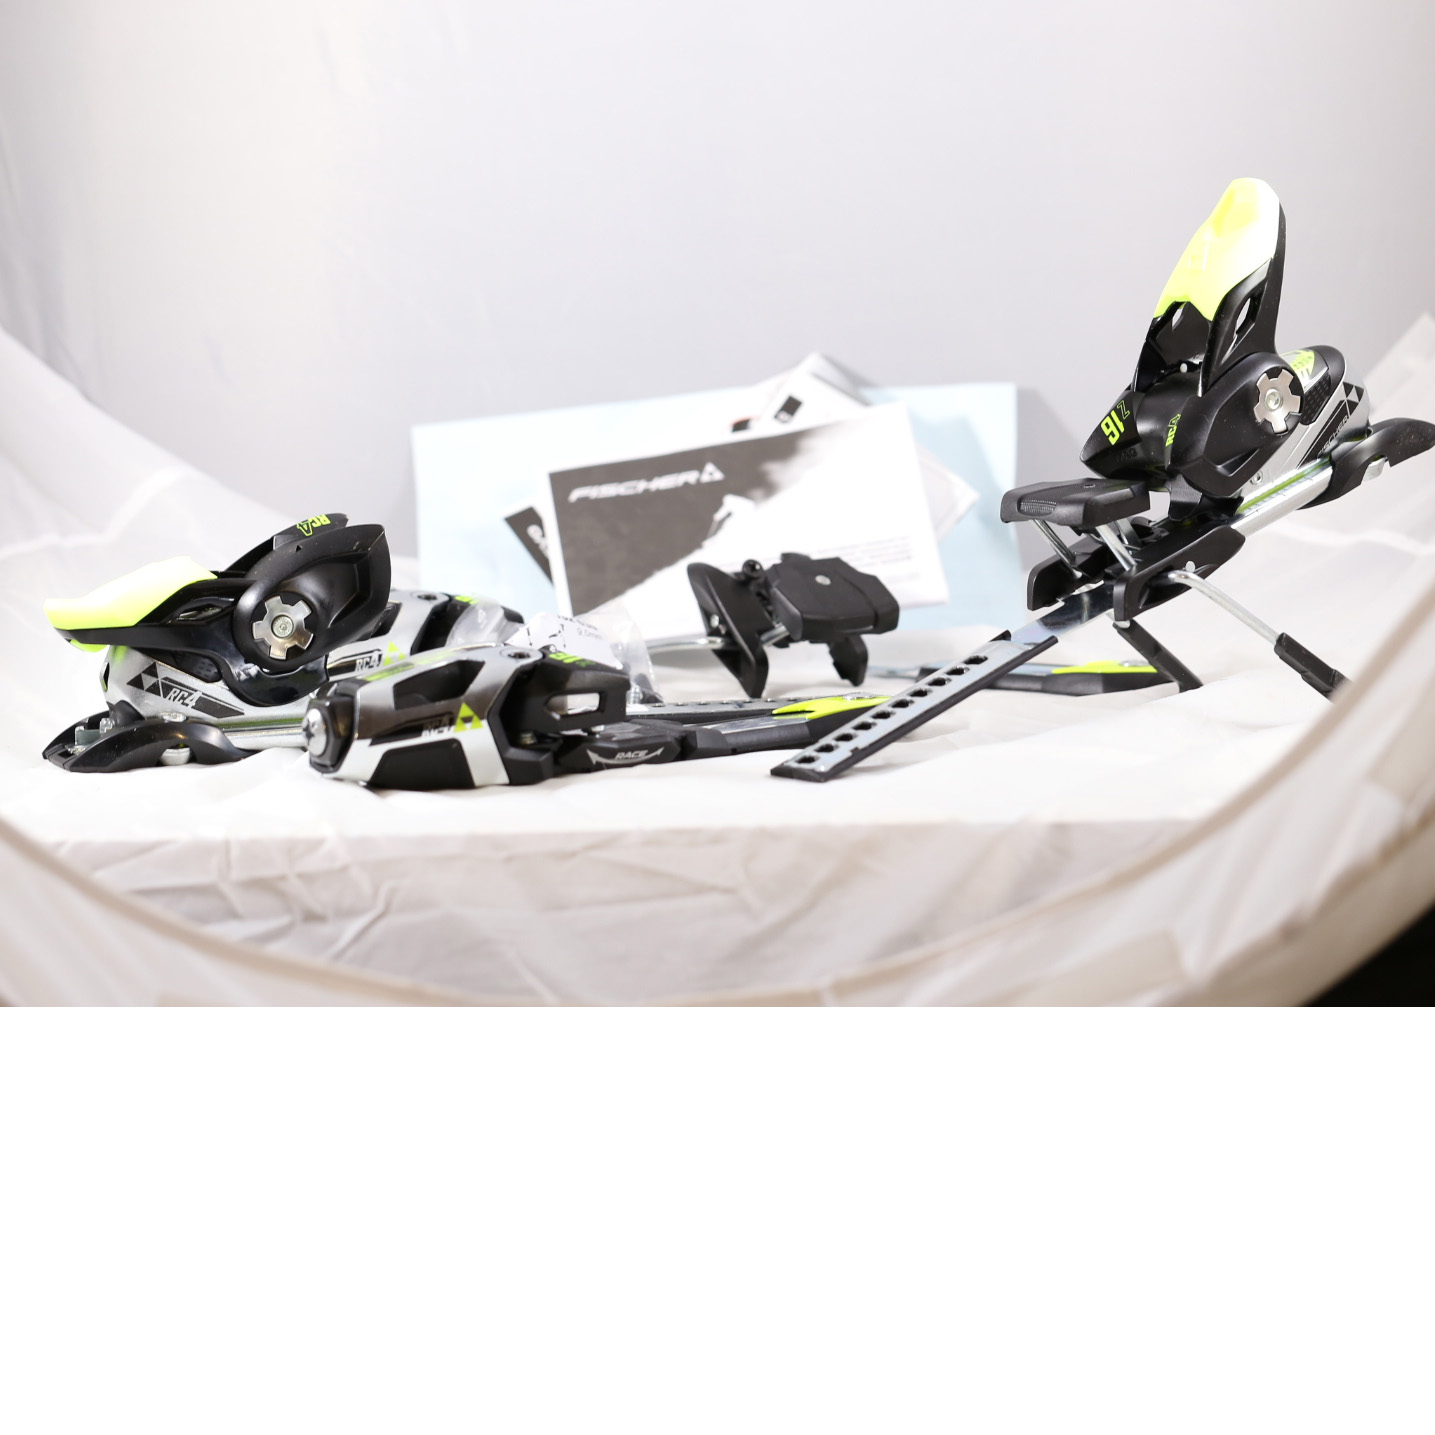 1387 - Fischer RC4 Z 16 Ff X Race Service Brake 85 Alpine Ski Bindings sale discount price